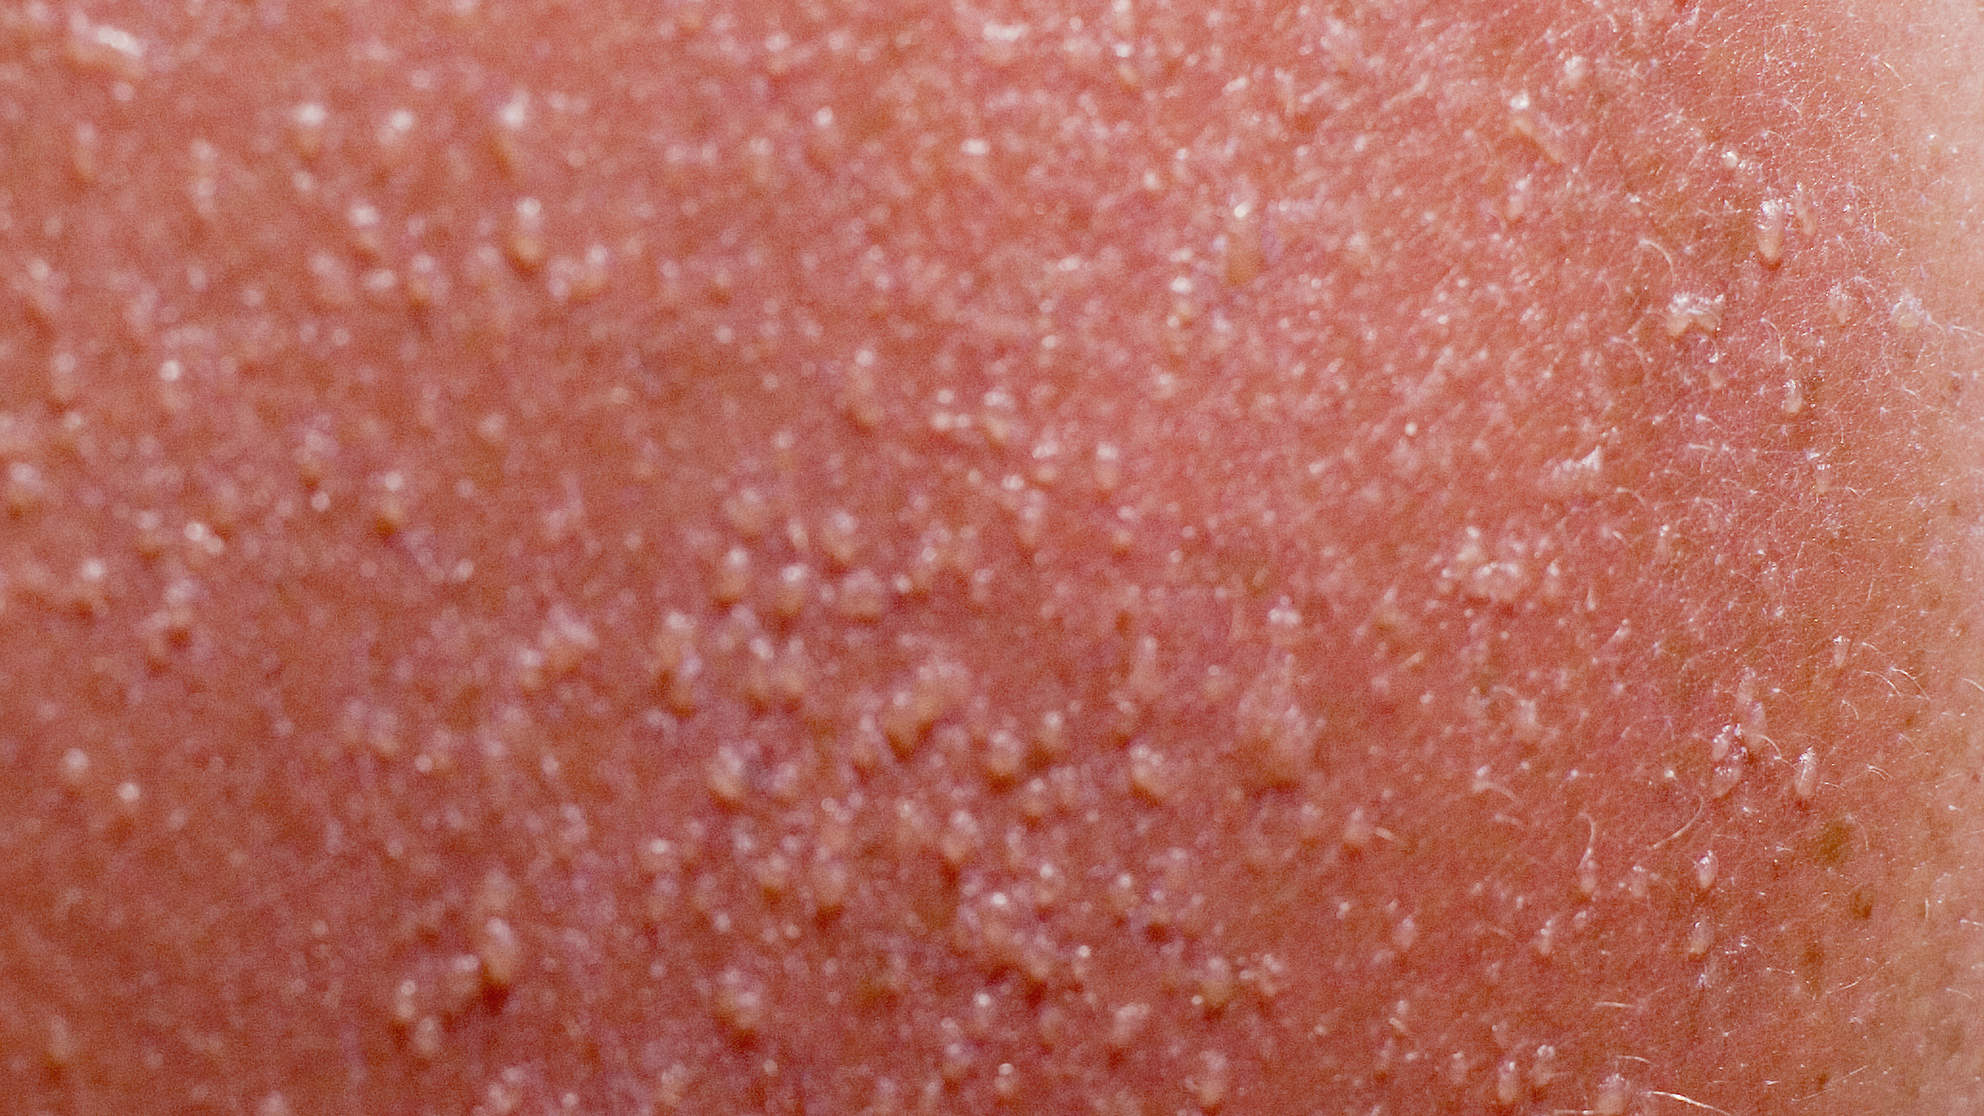 Sun Poisoning: Symptoms and Treatment - Health